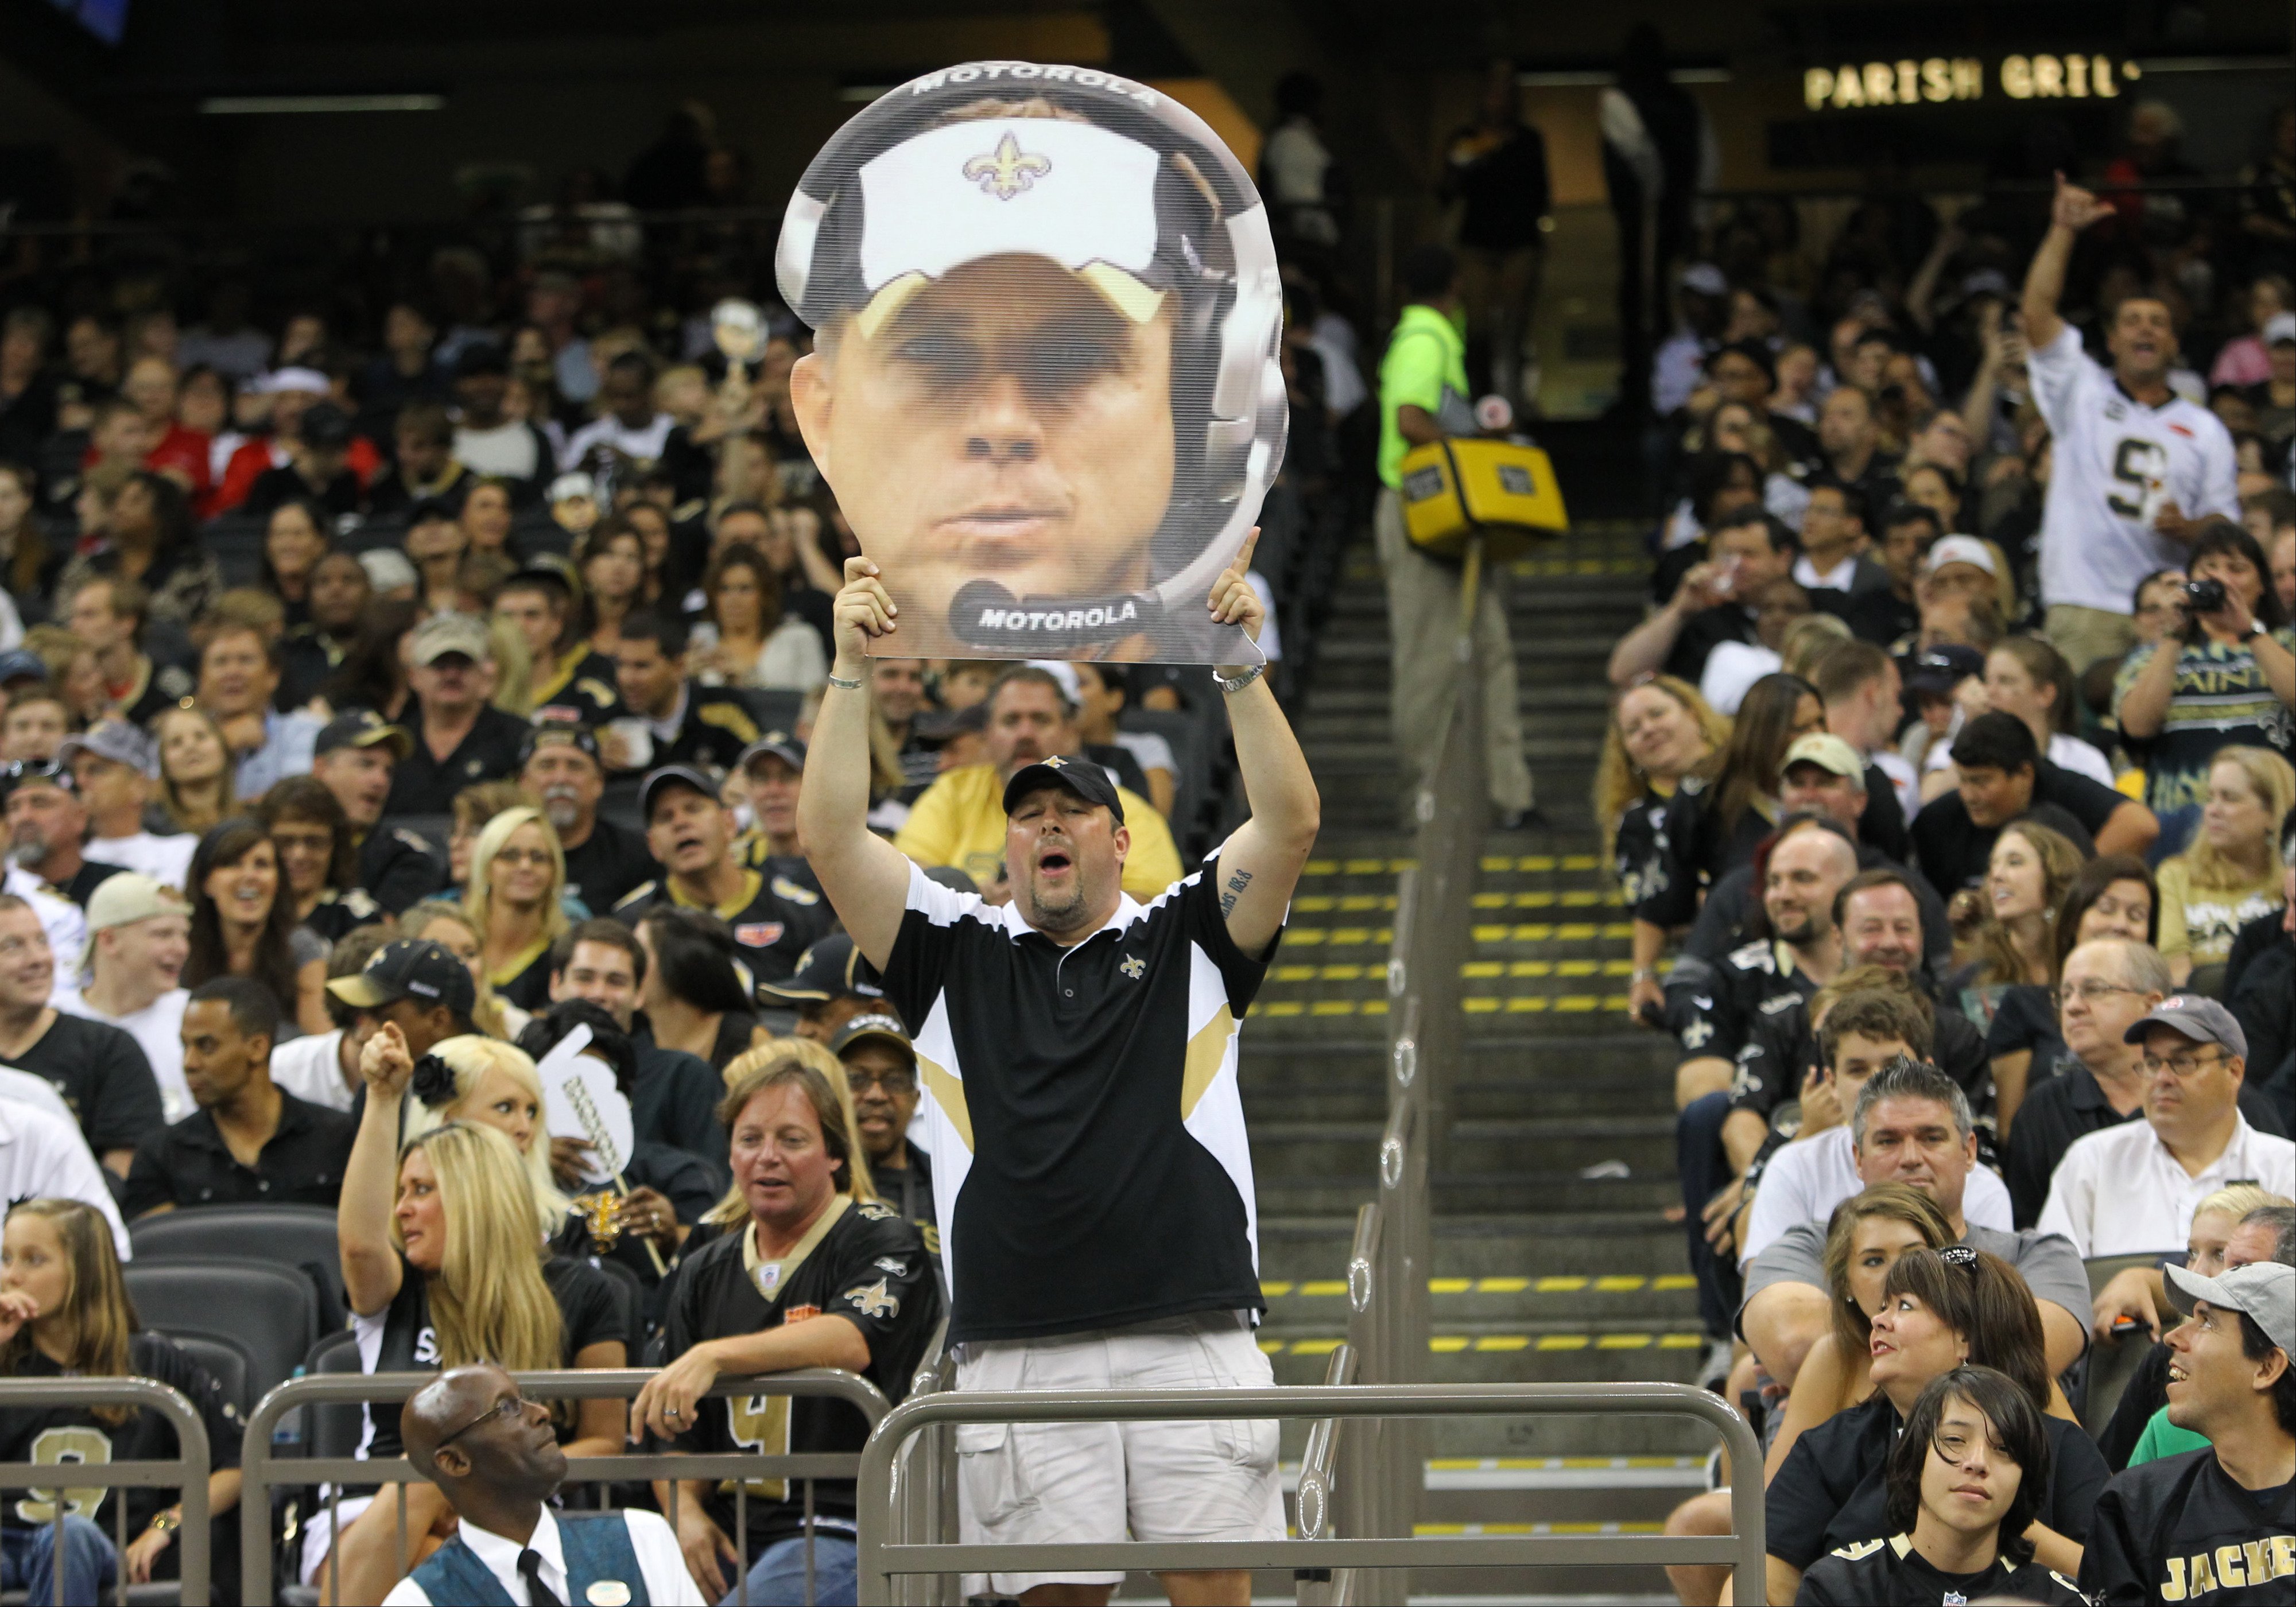 If this floating head makes you yearn for the real Sean Payton, you may want to tune in to Sunday's OTL on ESPN for the Sean Payton feature story.  Mandatory Credit: Derick E. Hingle-US PRESSWIRE